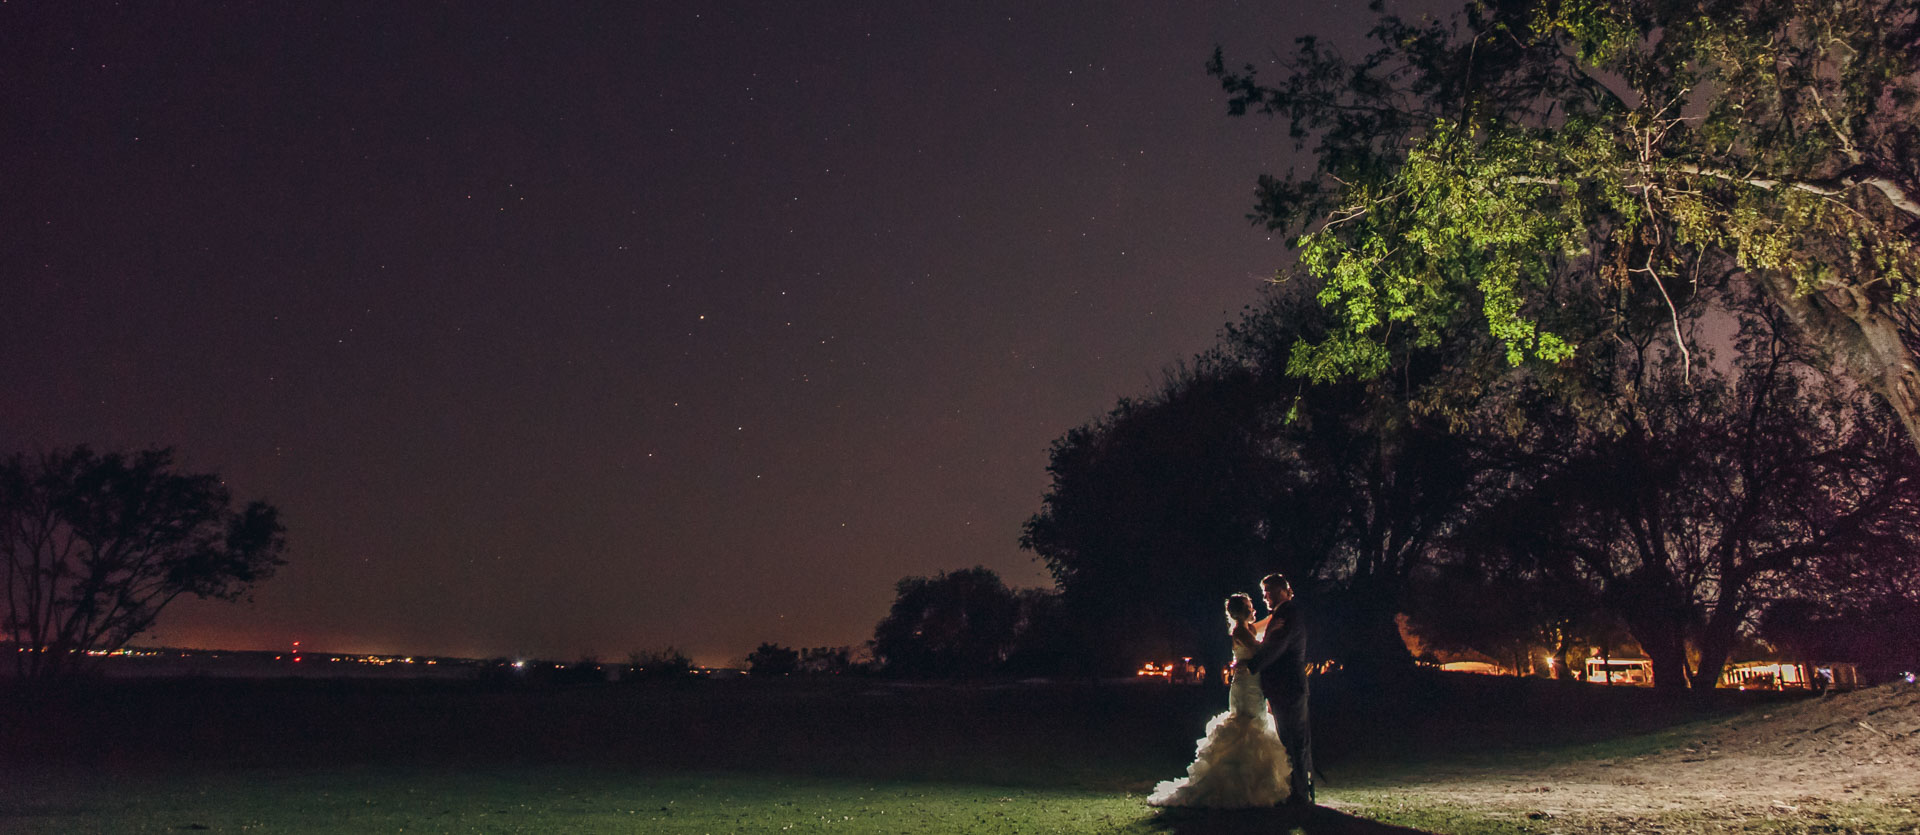 night-with-bride-and-groom